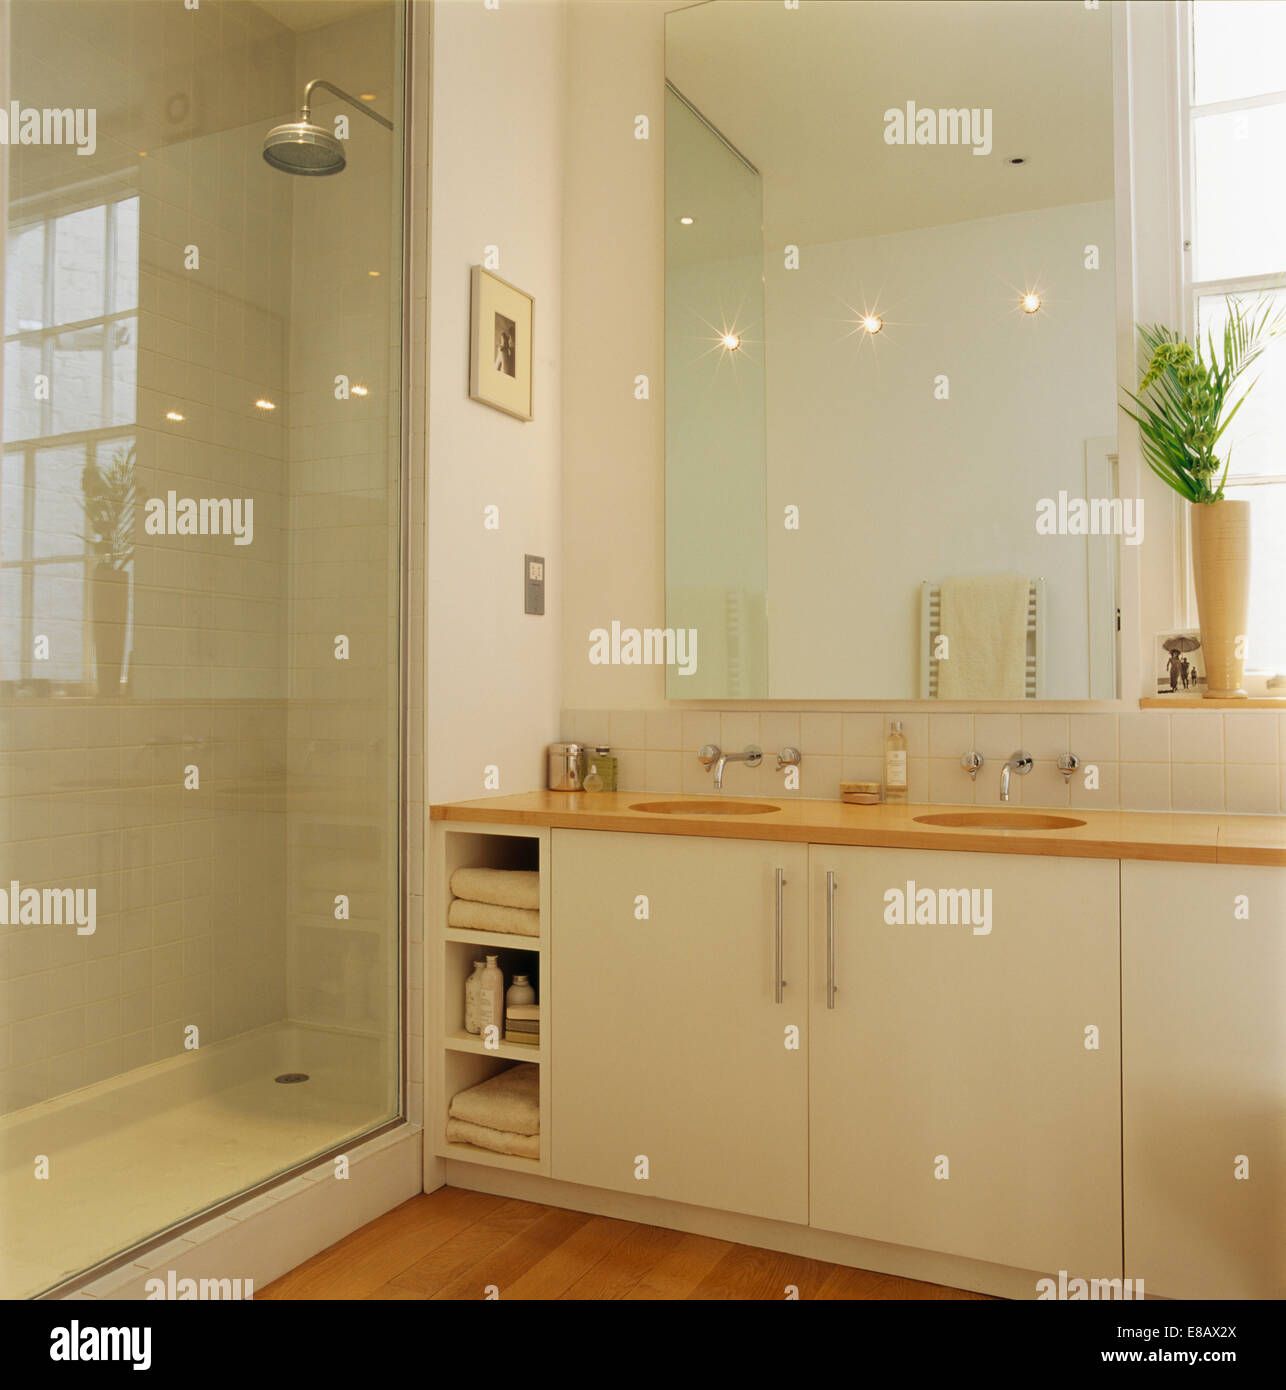 Marvelous Glass Door On Shower Cabinet In Modern Bathroom With Large Interior Design Ideas Tzicisoteloinfo